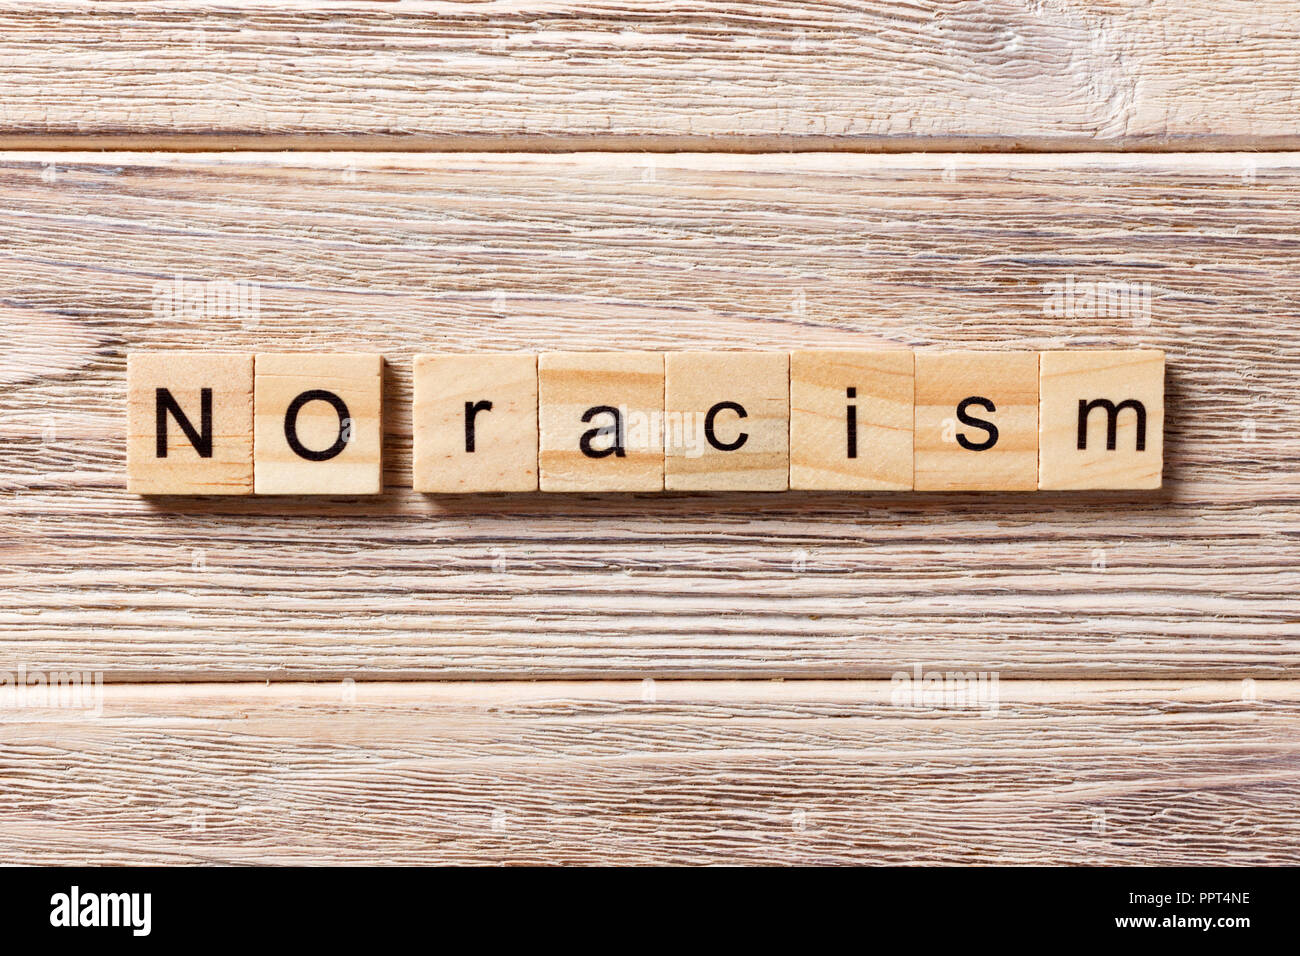 No racism word written on wood block. No racism text on table, concept. - Stock Image